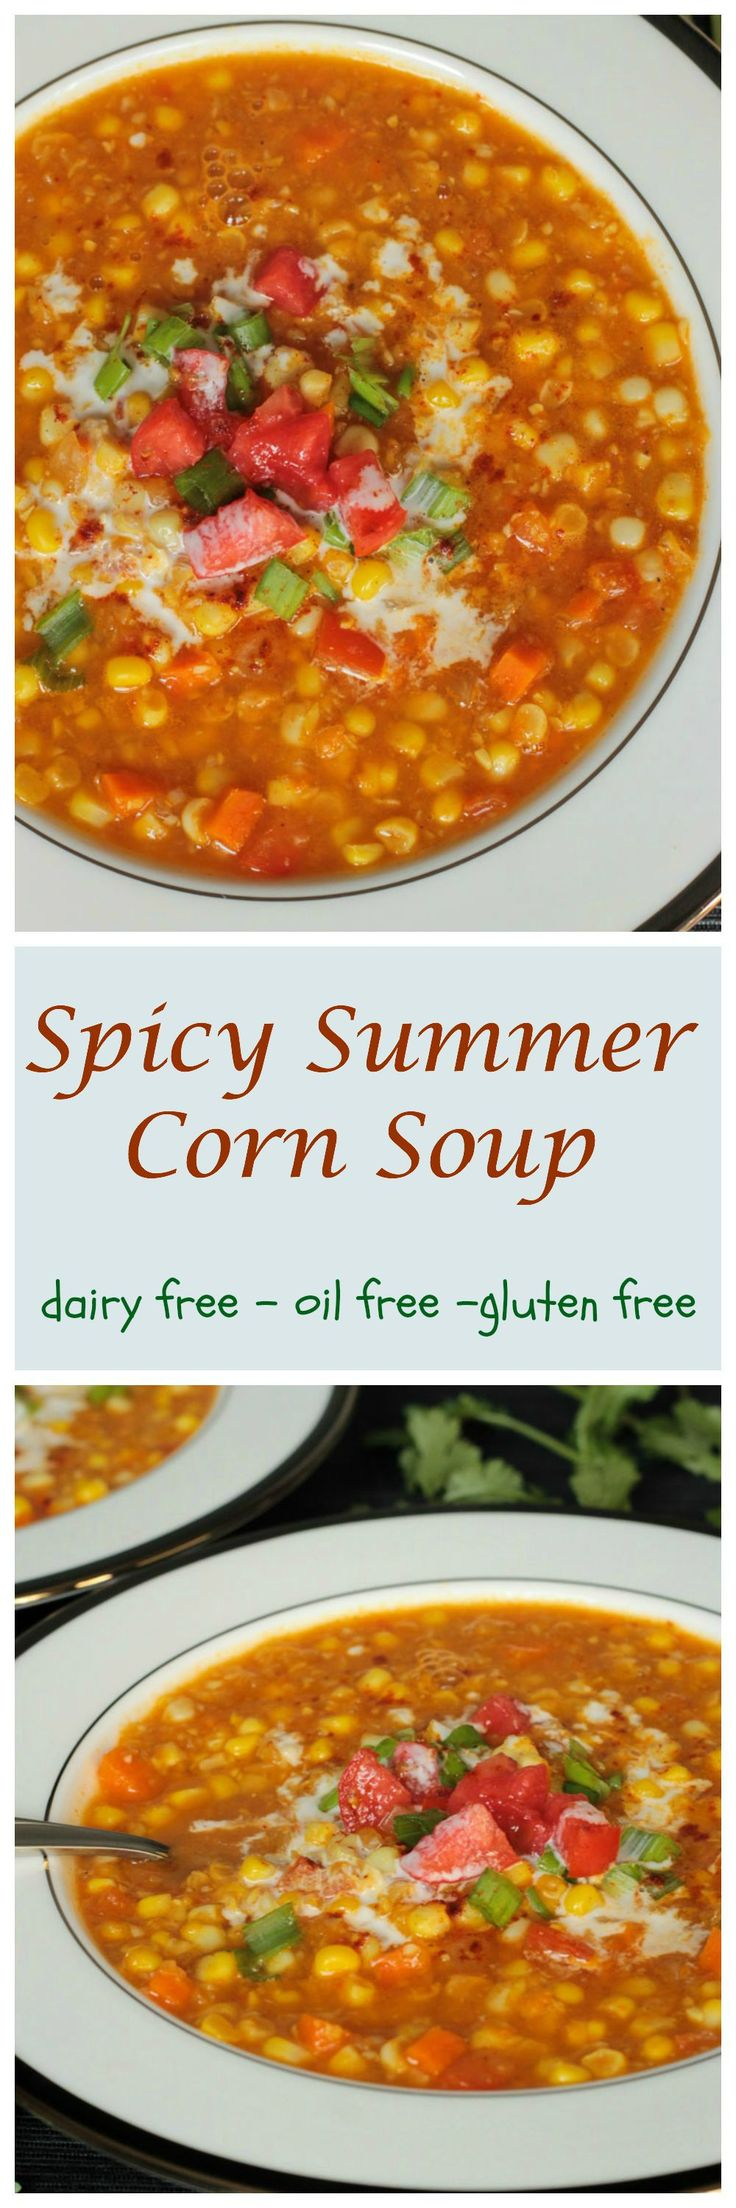 Spicy Summer Corn Soup - there is nothing better than fresh #sweetcorn in the summer. Use it in this dish for a flavorful sweet corn soup. It's a little #spicy and a little #smoky too!  #soup #corn #dairyfree #vegan #glutenfree #oilfree